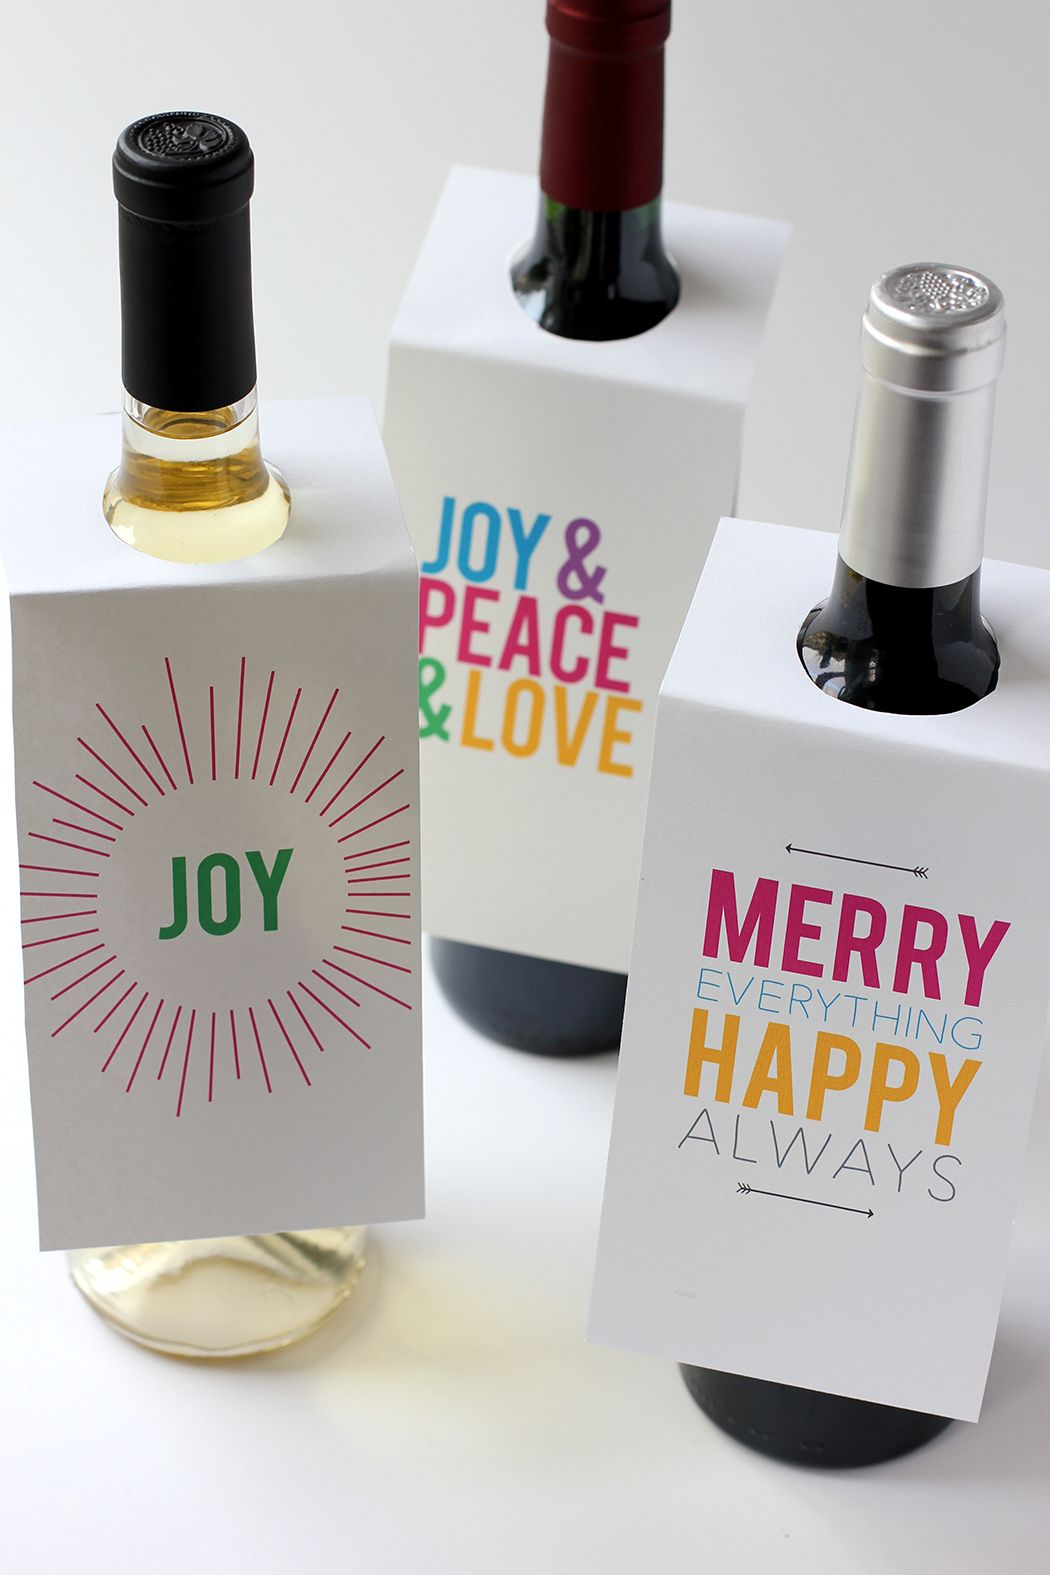 photograph about Printable Wine Bottle Tags named Trip Wine Bottle Present Tags Absolutely free Printable Present tags